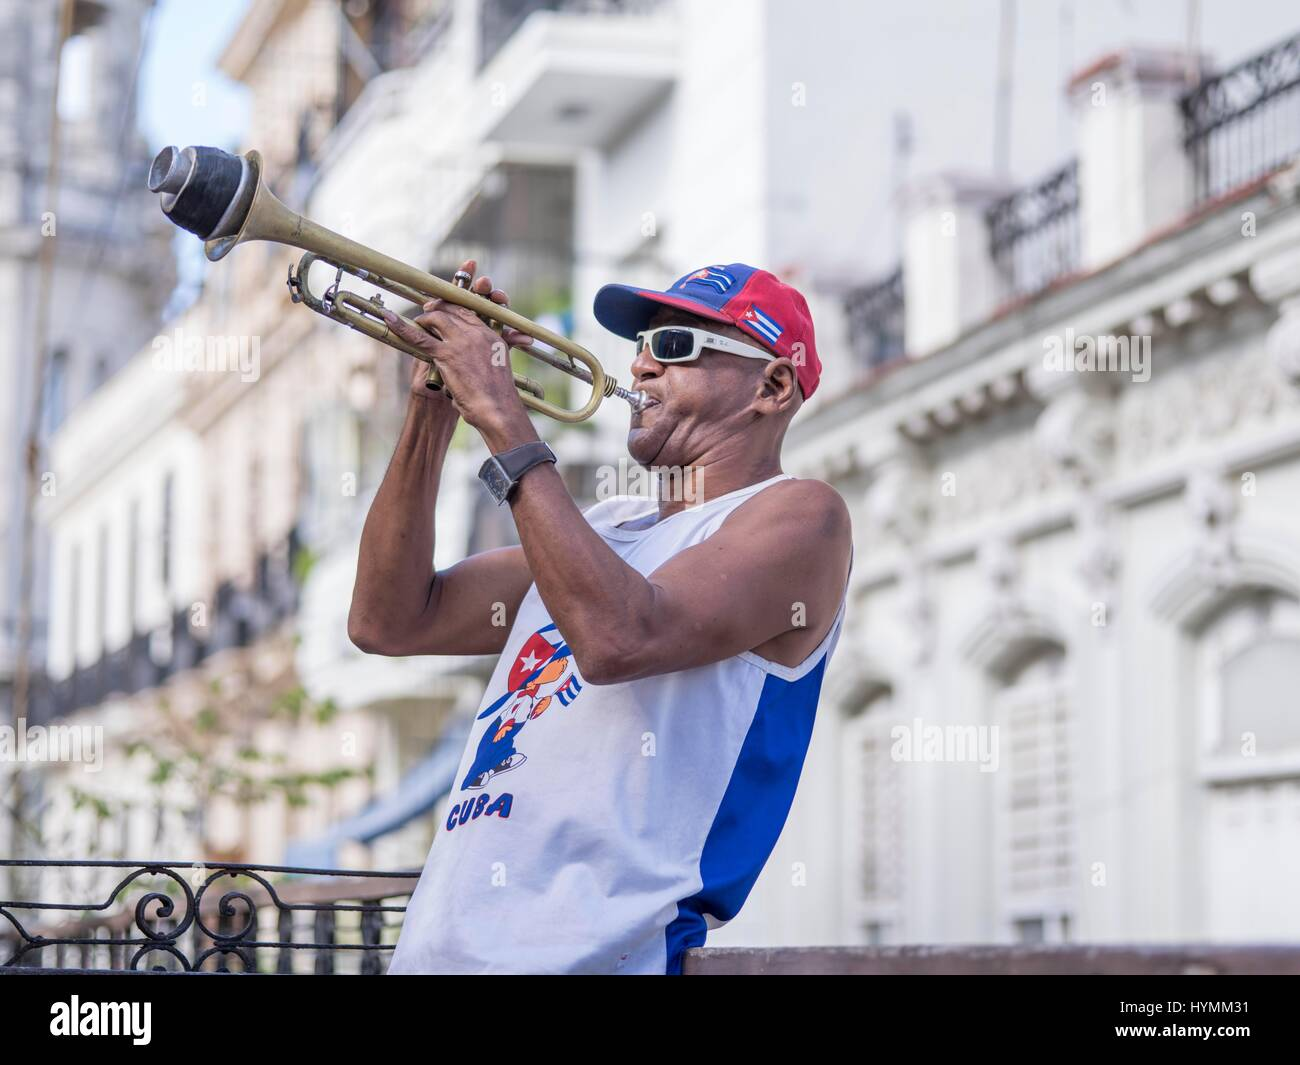 Cuban musician playing trumpet in Havana City, Cuba, West Indies, Central America - Stock Image